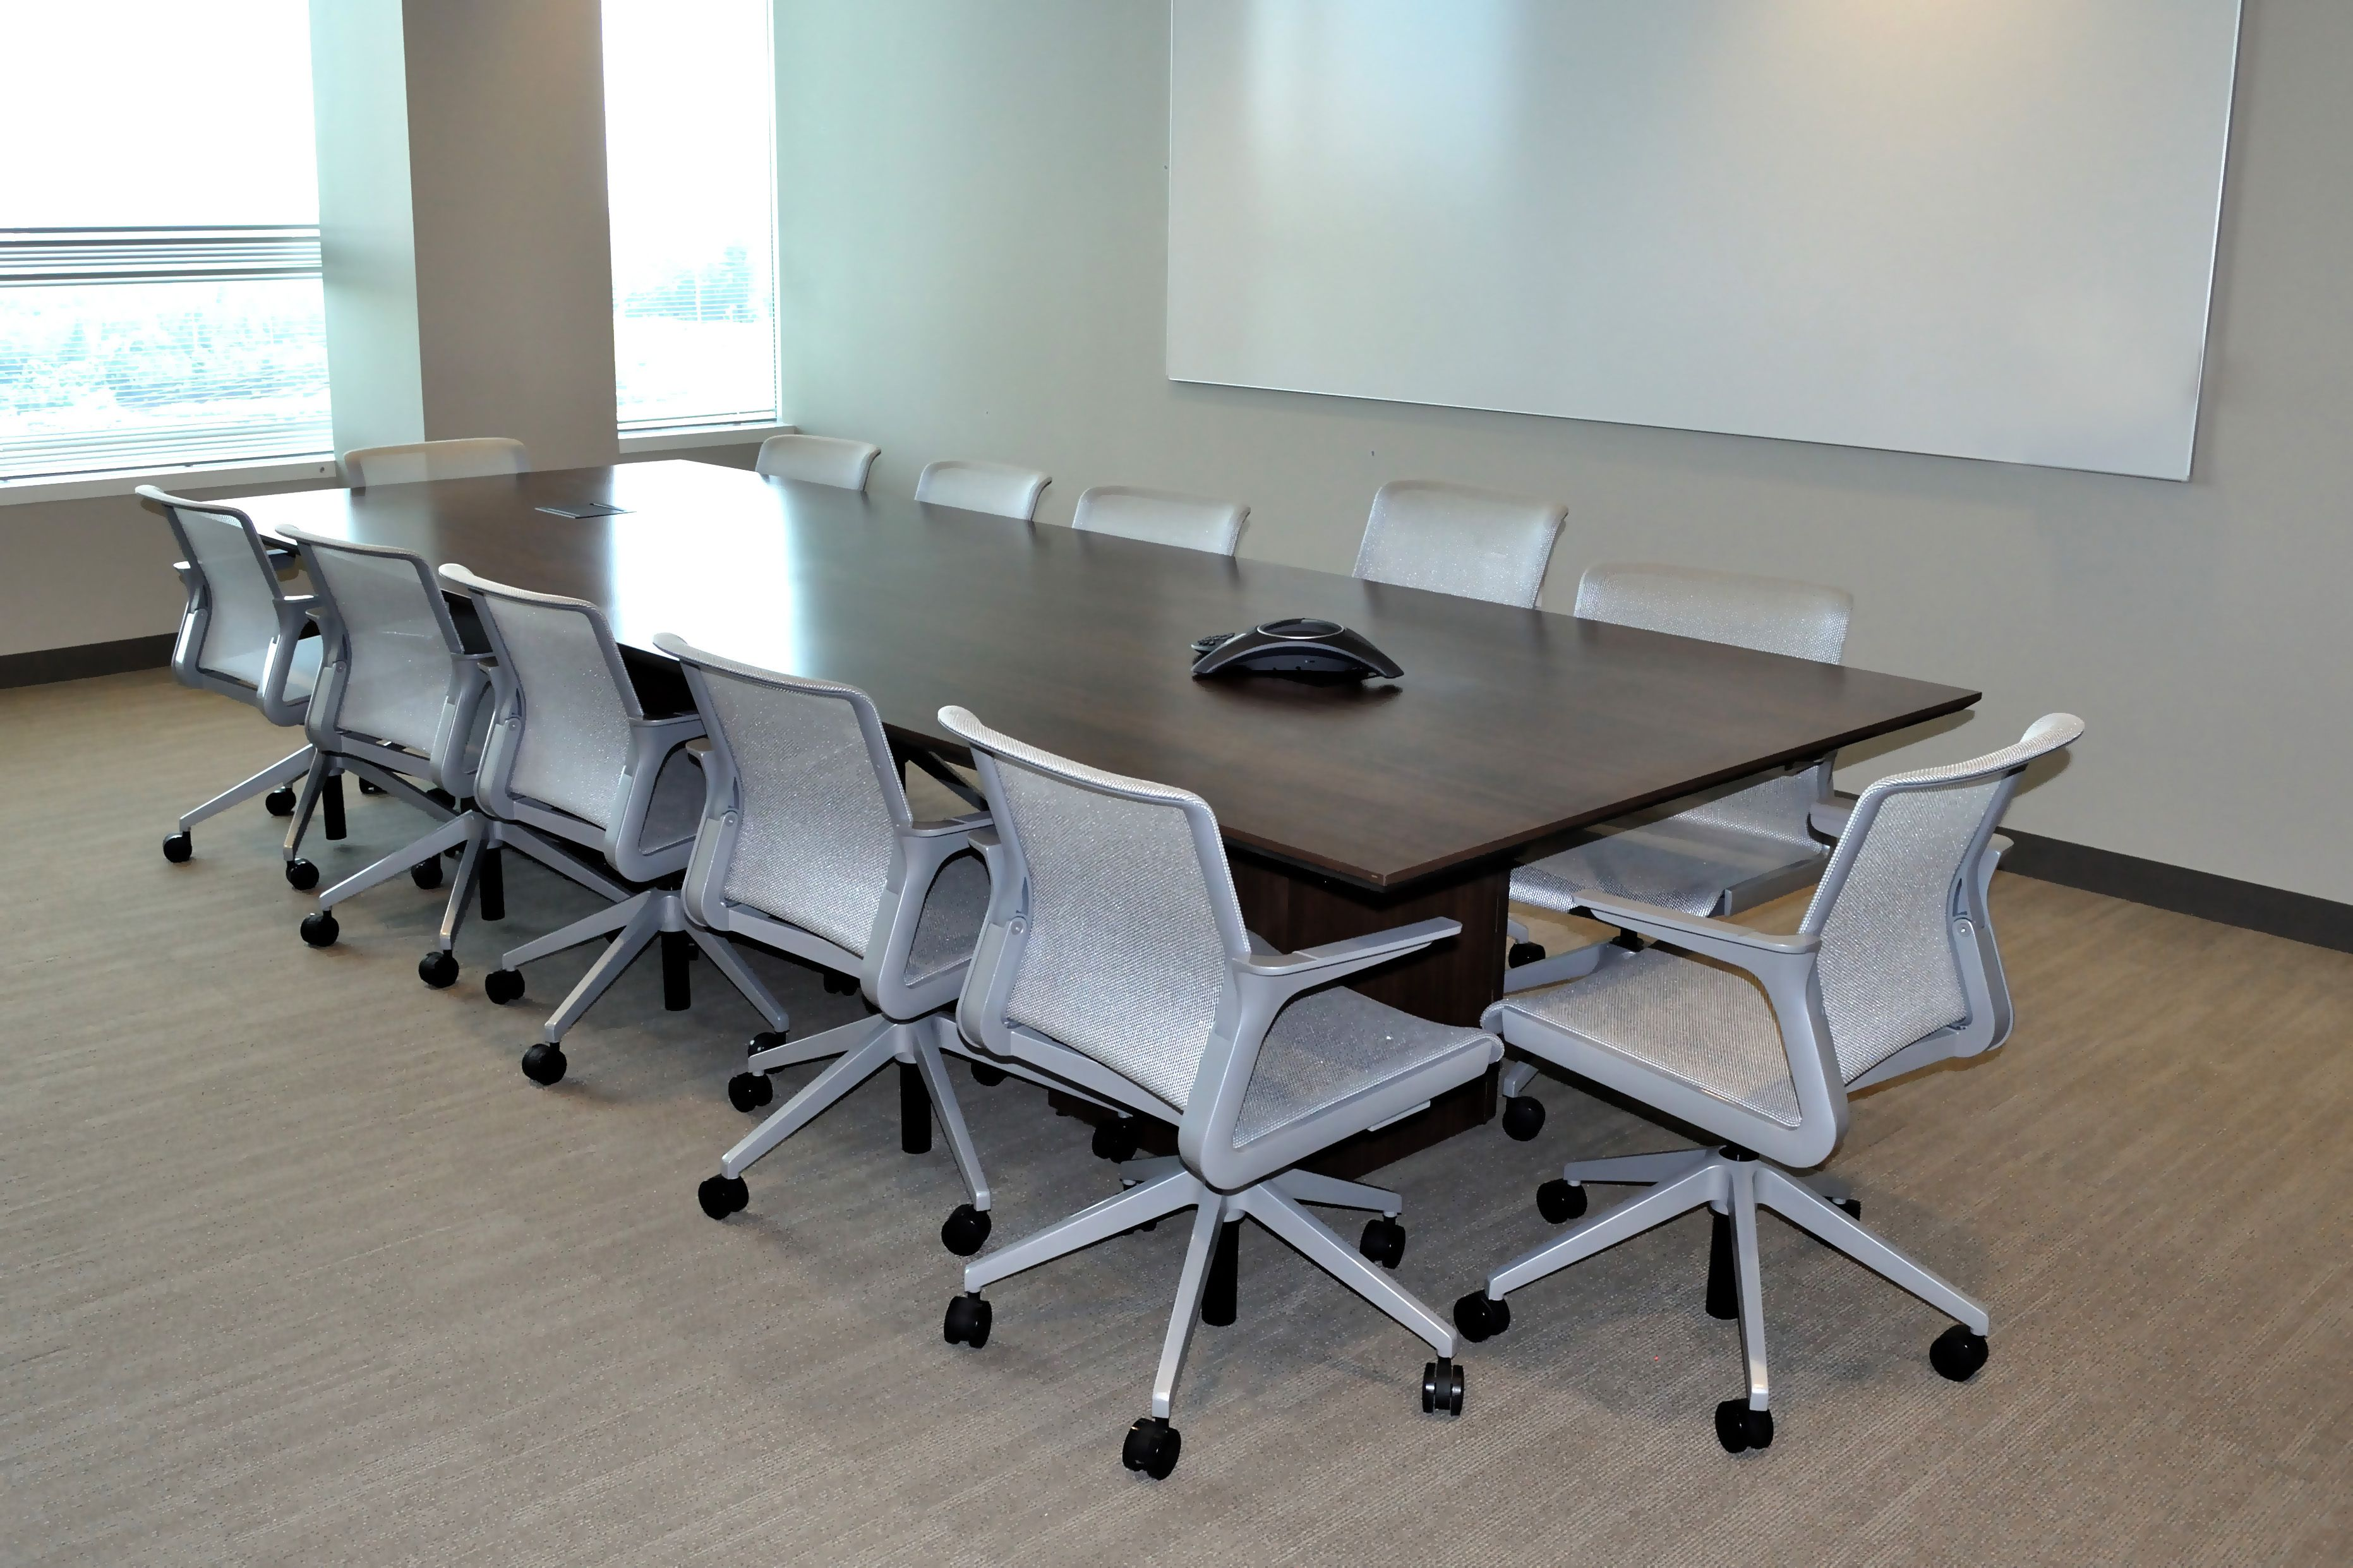 Gas South Hon Preside Table Allsteel Clarity Chairs